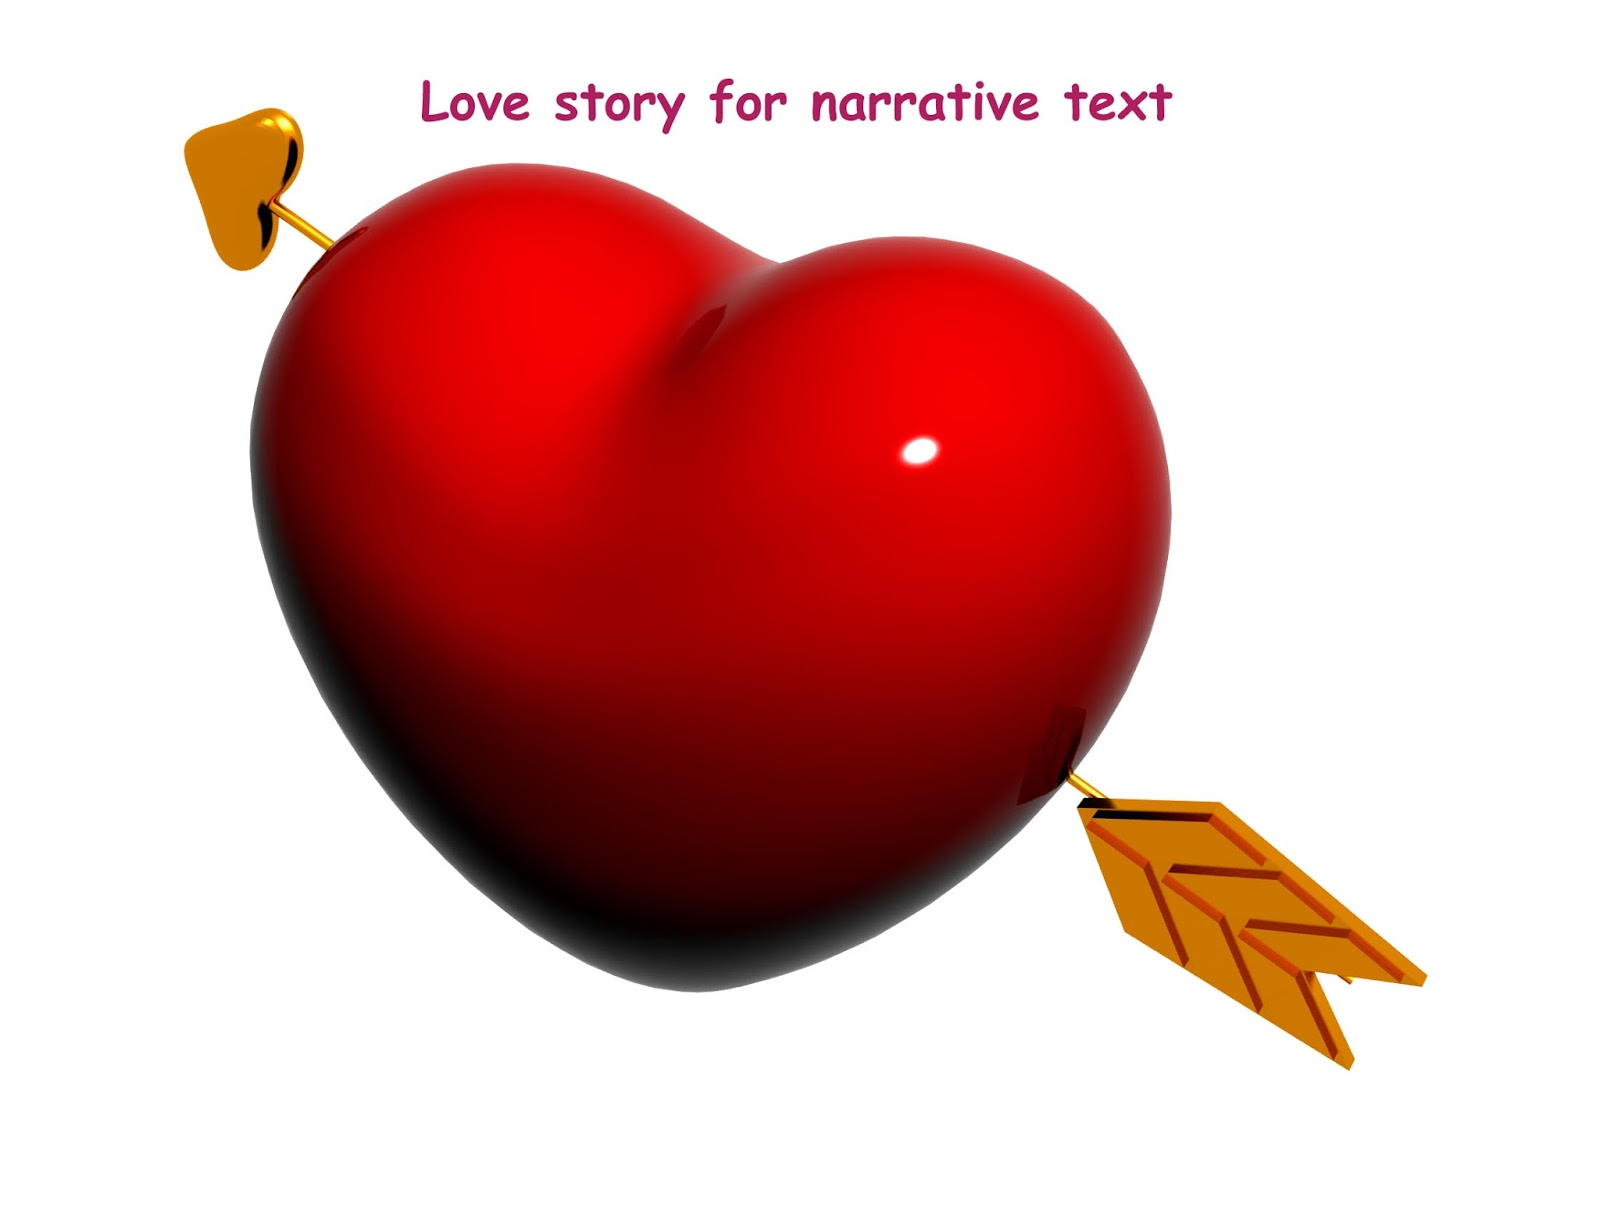 Note: This example of narrative text is based on Romeo and Juliet, a